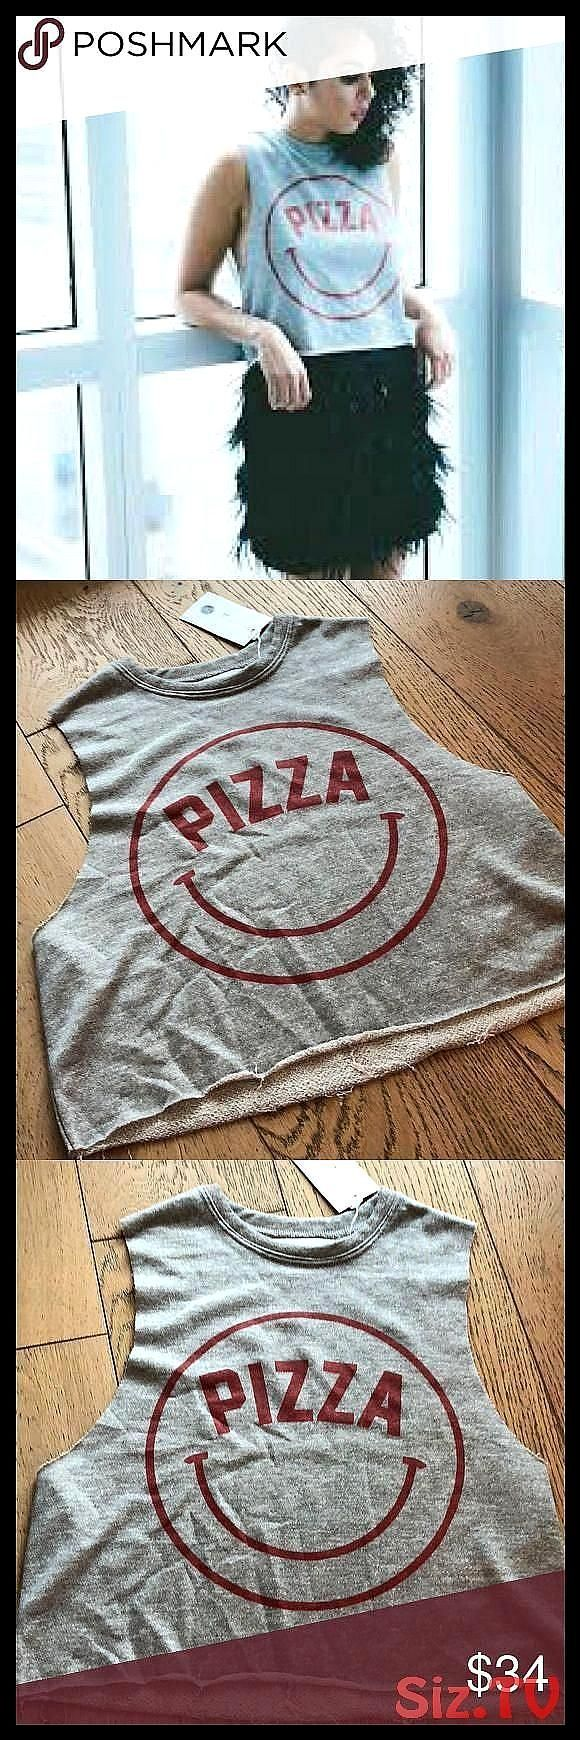 The Laundry Room Pizza T-shirt worn by BeyoncBy The Laundry Room featuring pizza...